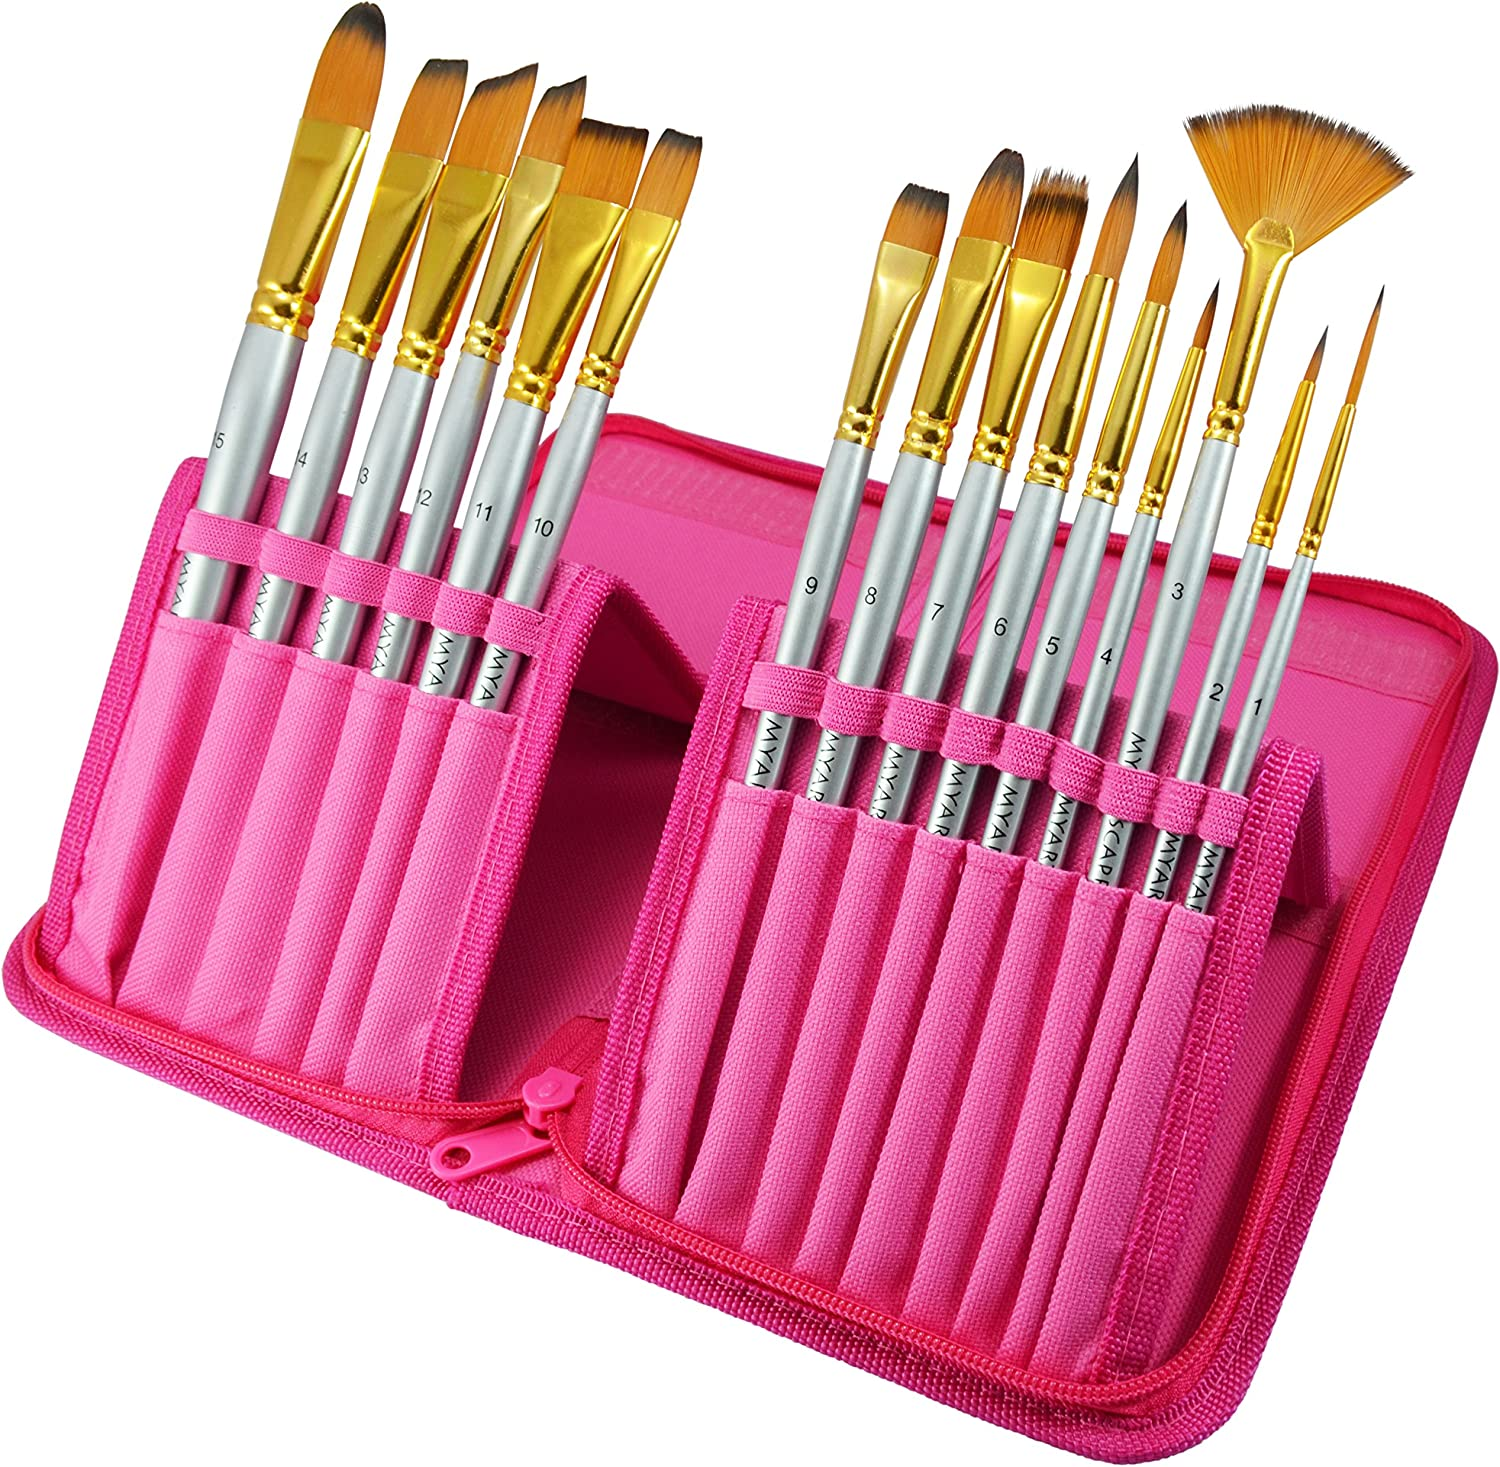 Paint Brushes - 15 Pc Art Brush Set for Watercolor, Acrylic, Oil & Face Painting | Short Handle Artist Paintbrushes with Travel Holder & Free Gift Box | 1 Year Warranty (Hot pink)